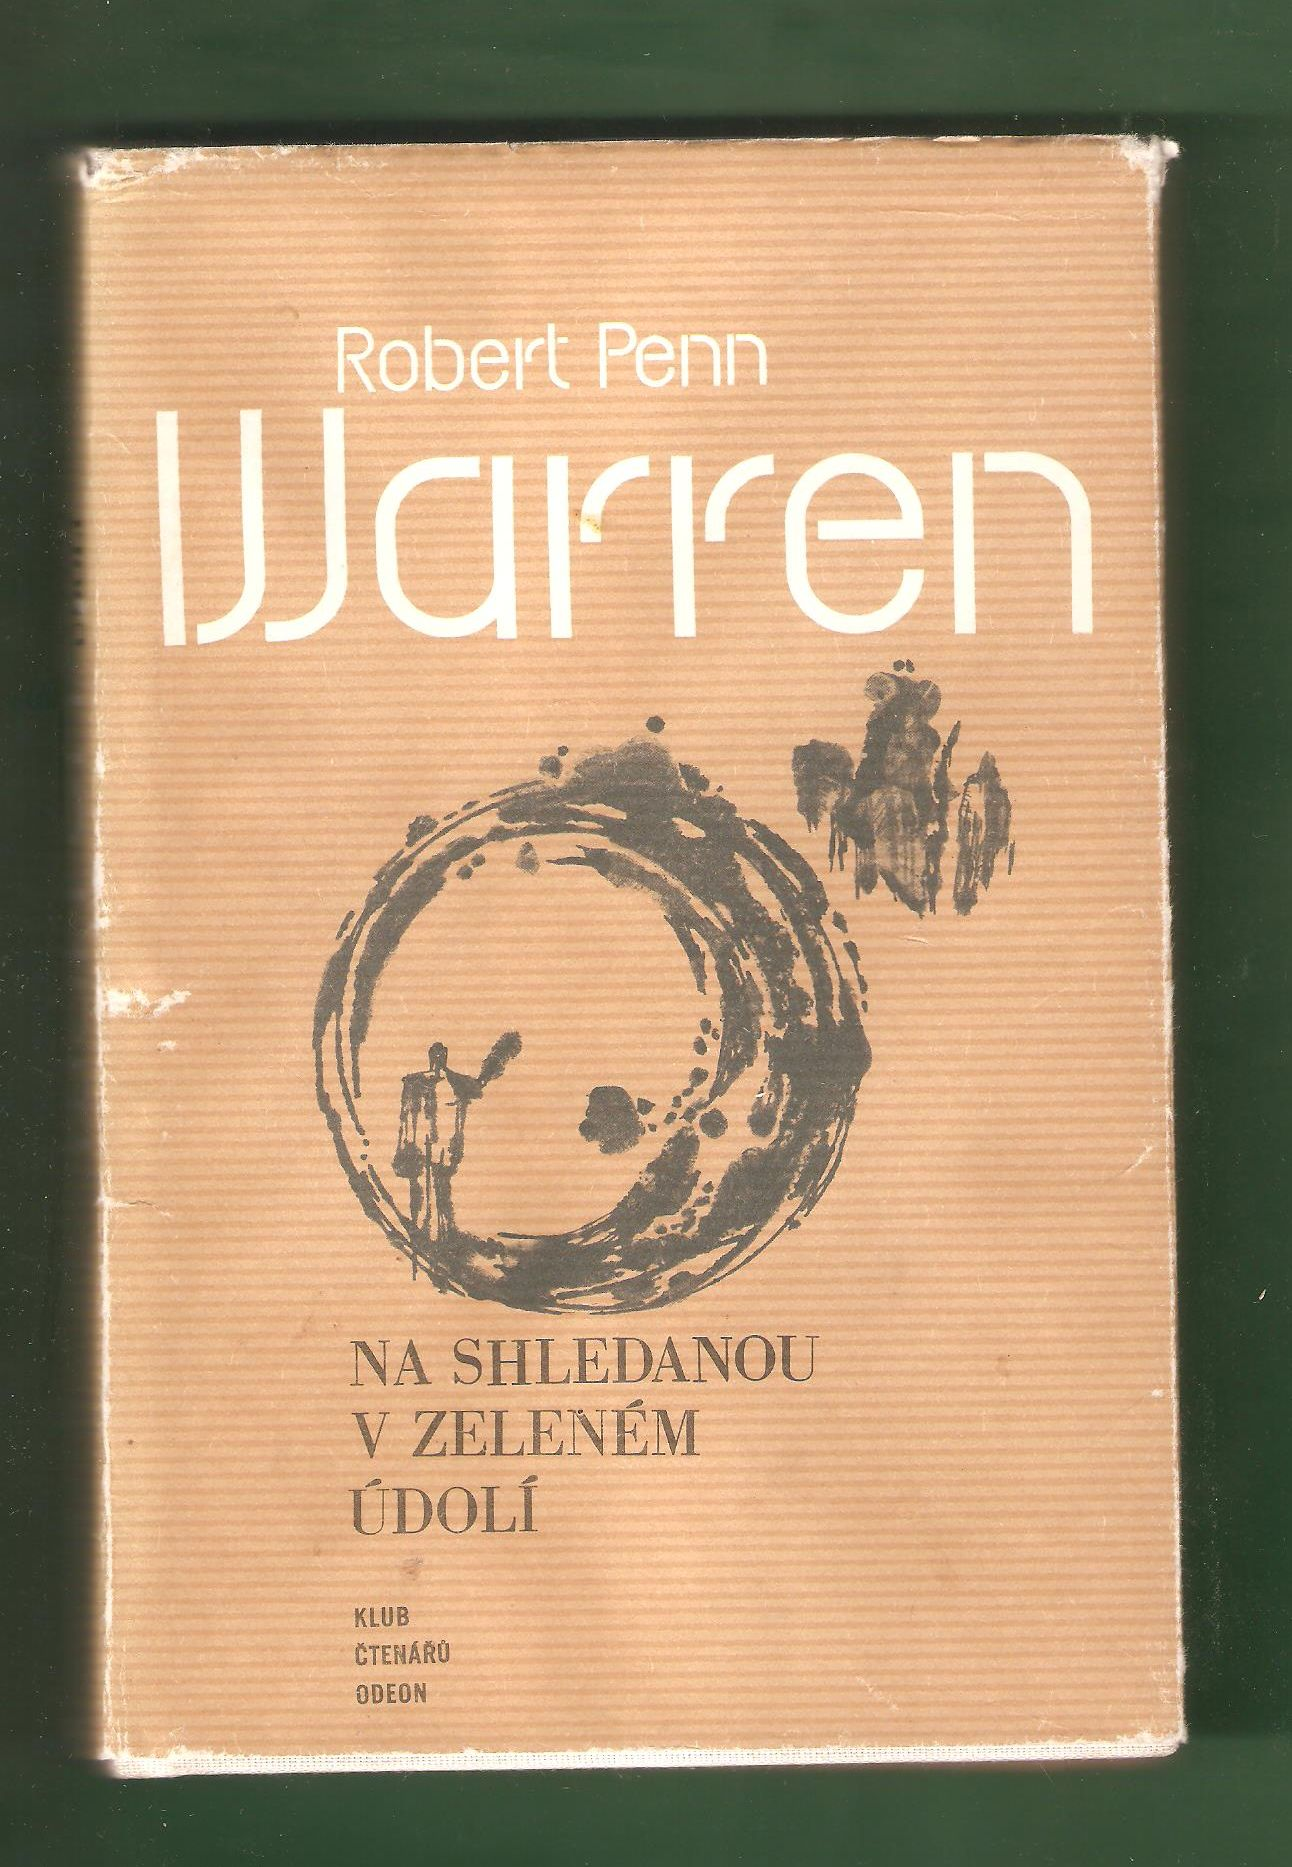 Warren - Robert Penn